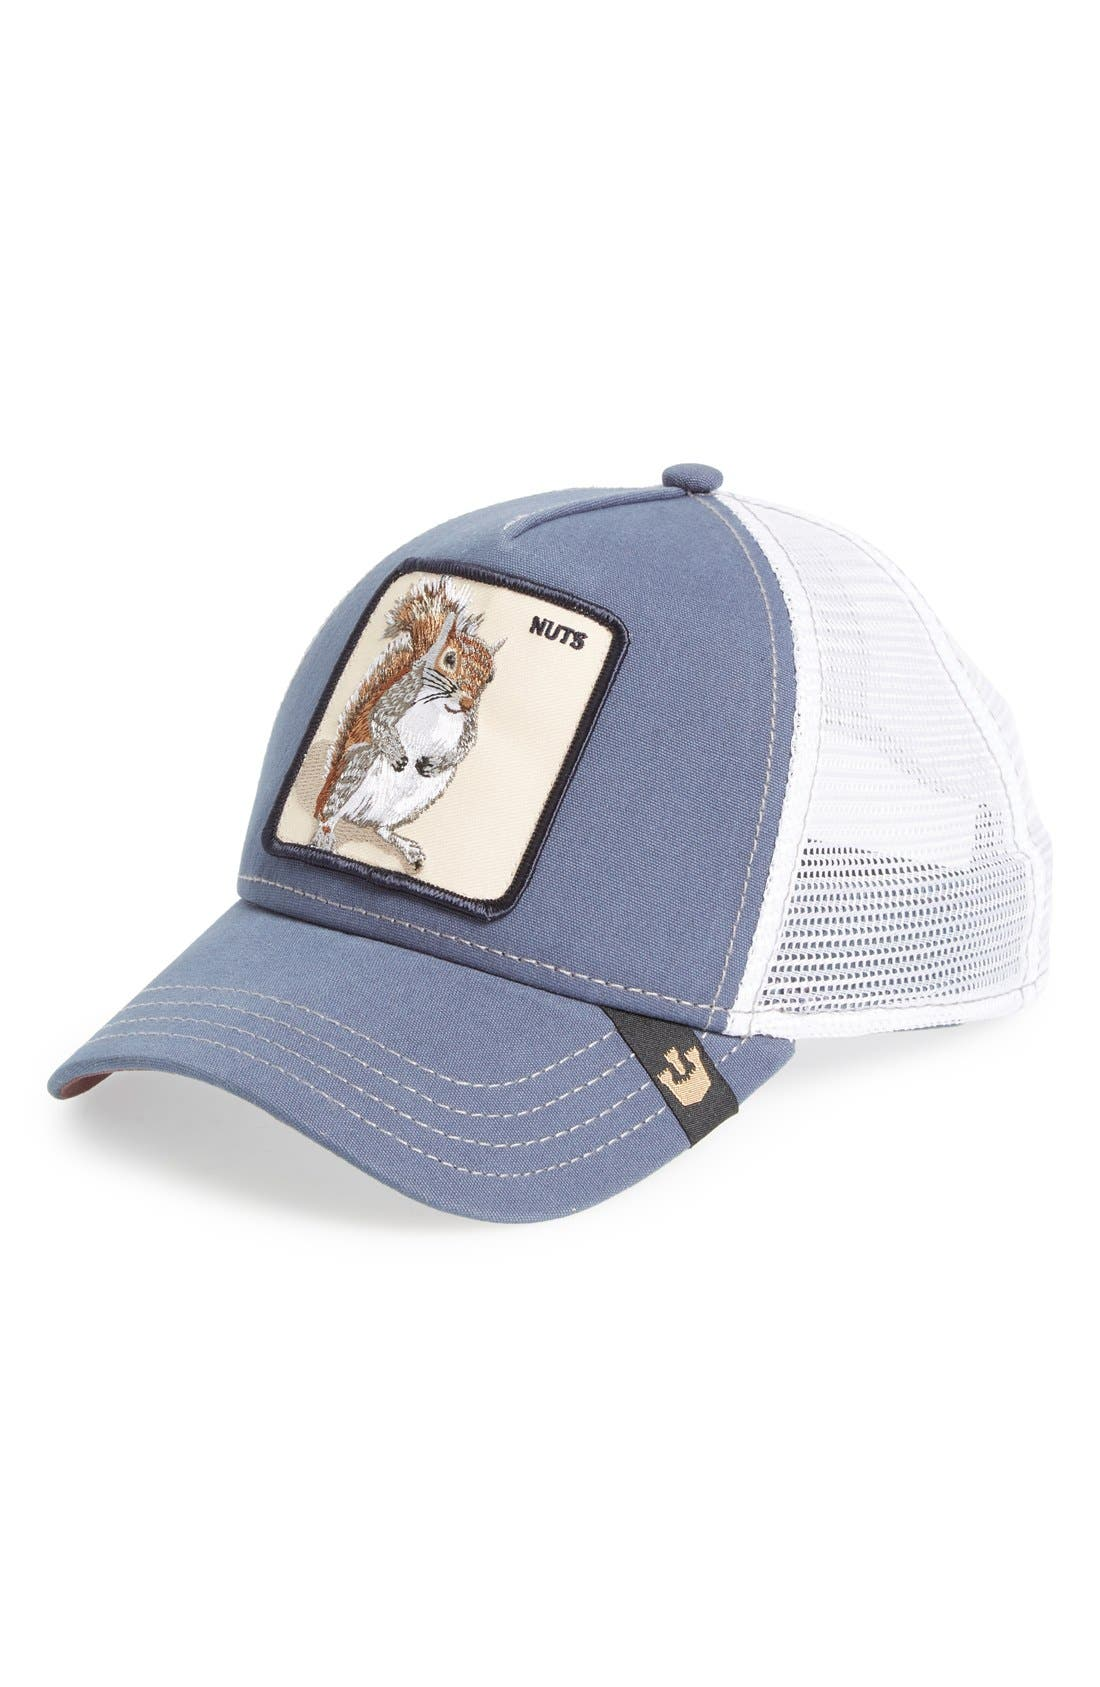 'Nutty' Trucker Hat,                         Main,                         color, Blue